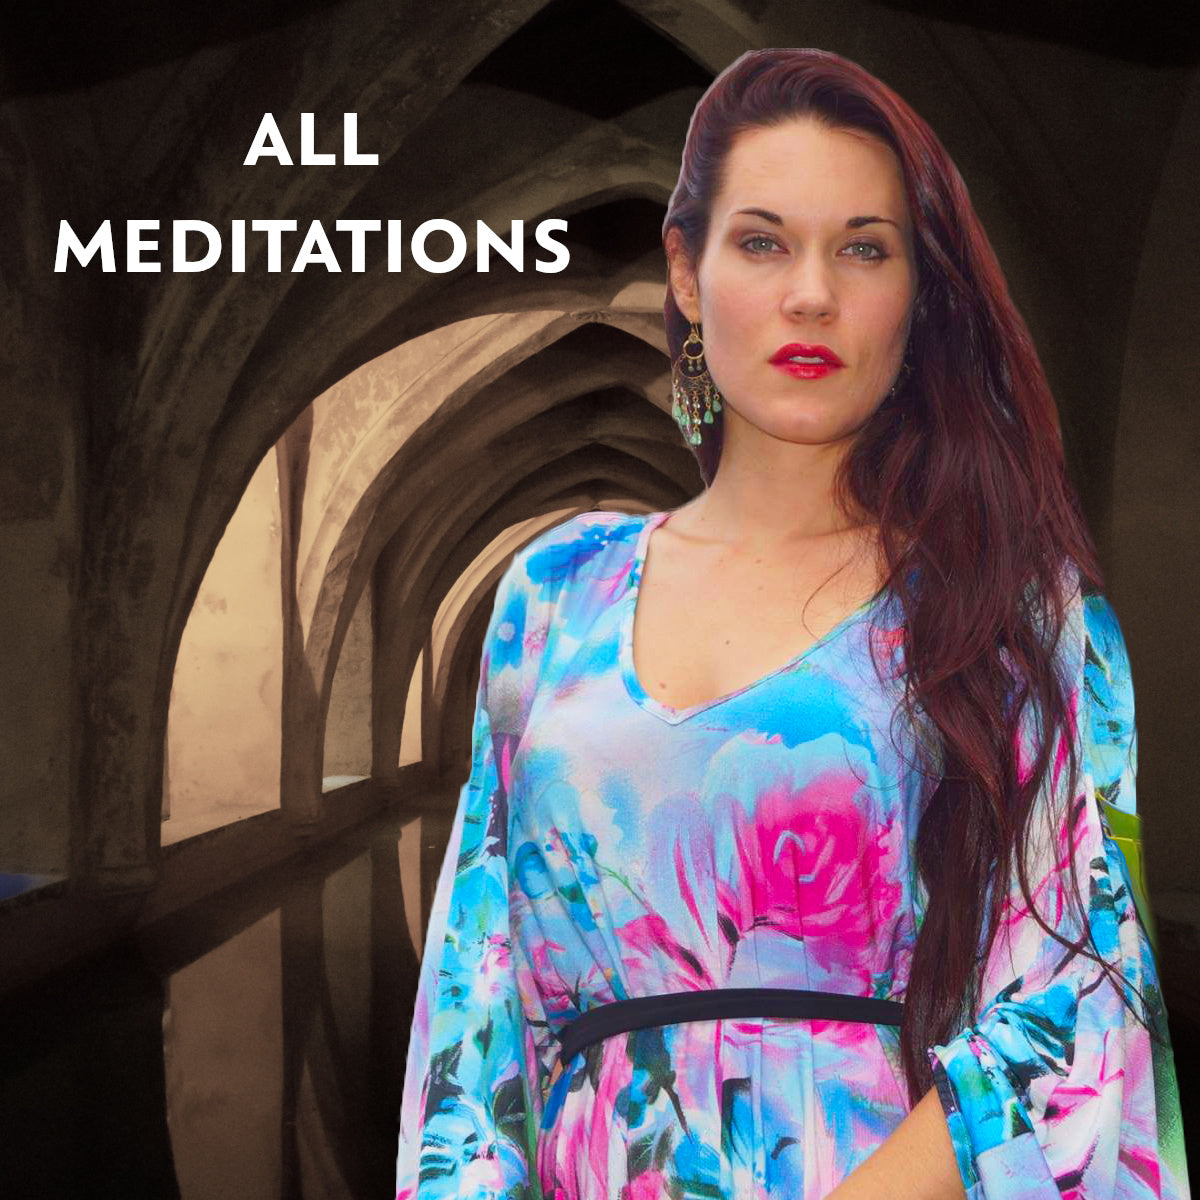 TEAL'S 2020 MEDITATION VAULT - ALL MEDITATIONS!